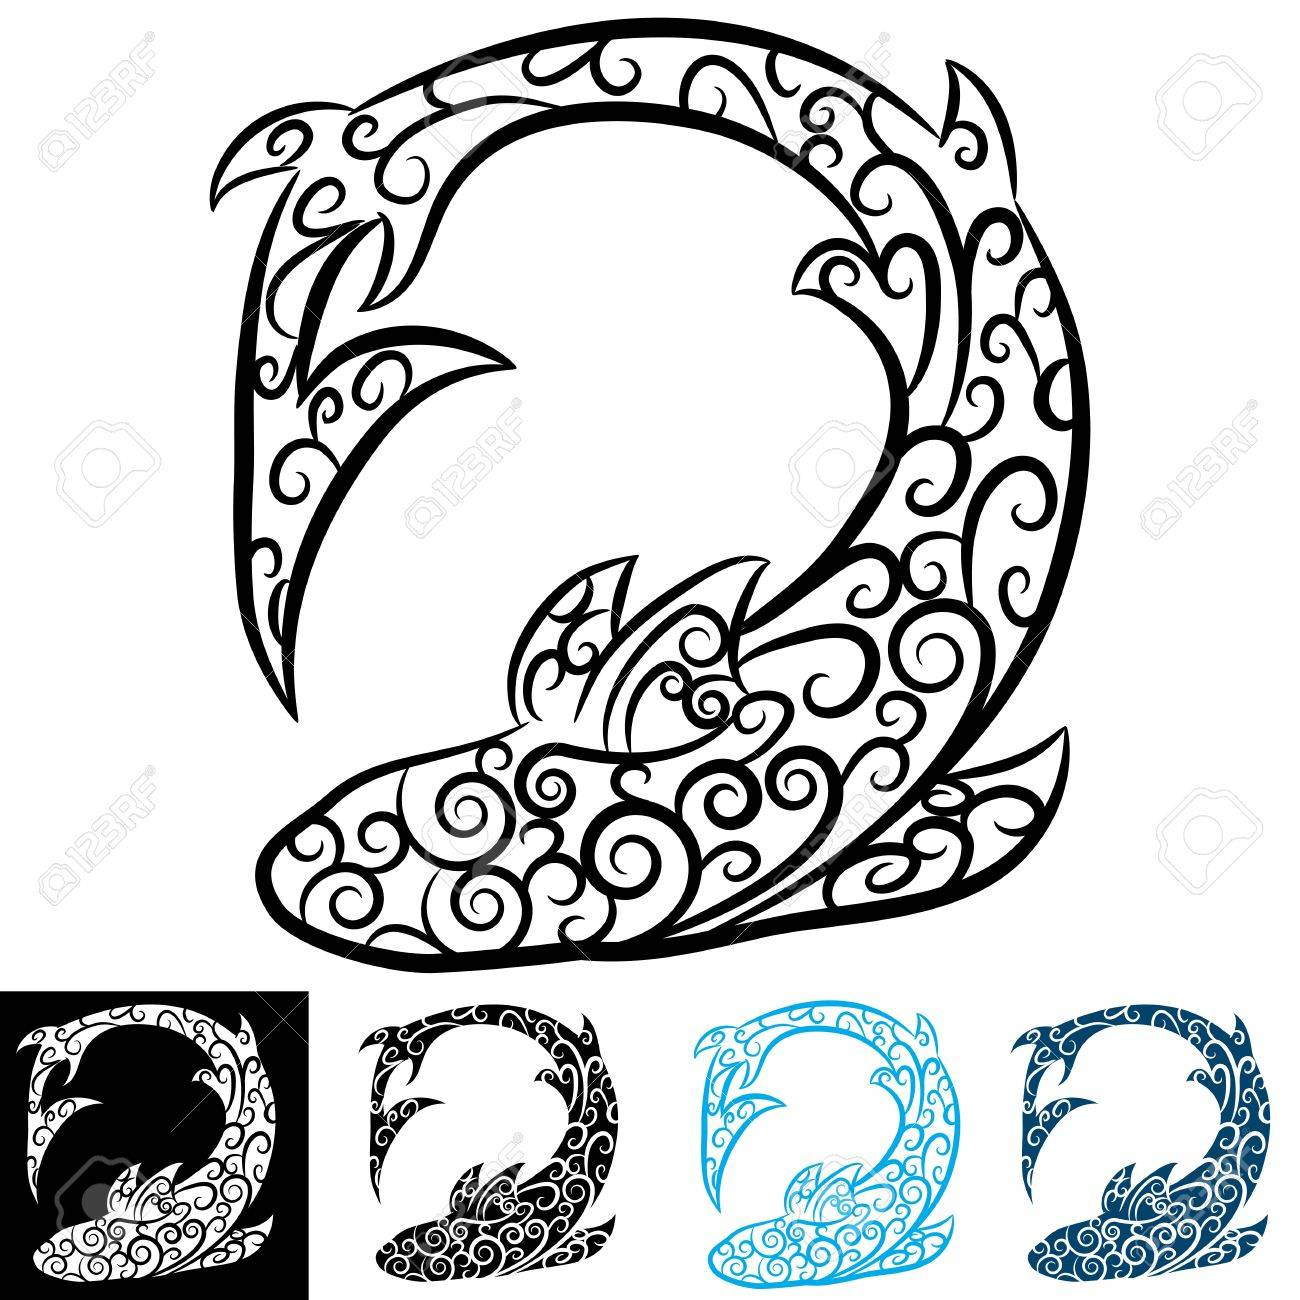 An image of a shark swirl tattoo royalty free cliparts vectors an image of a shark swirl tattoo stock vector 15561301 biocorpaavc Images